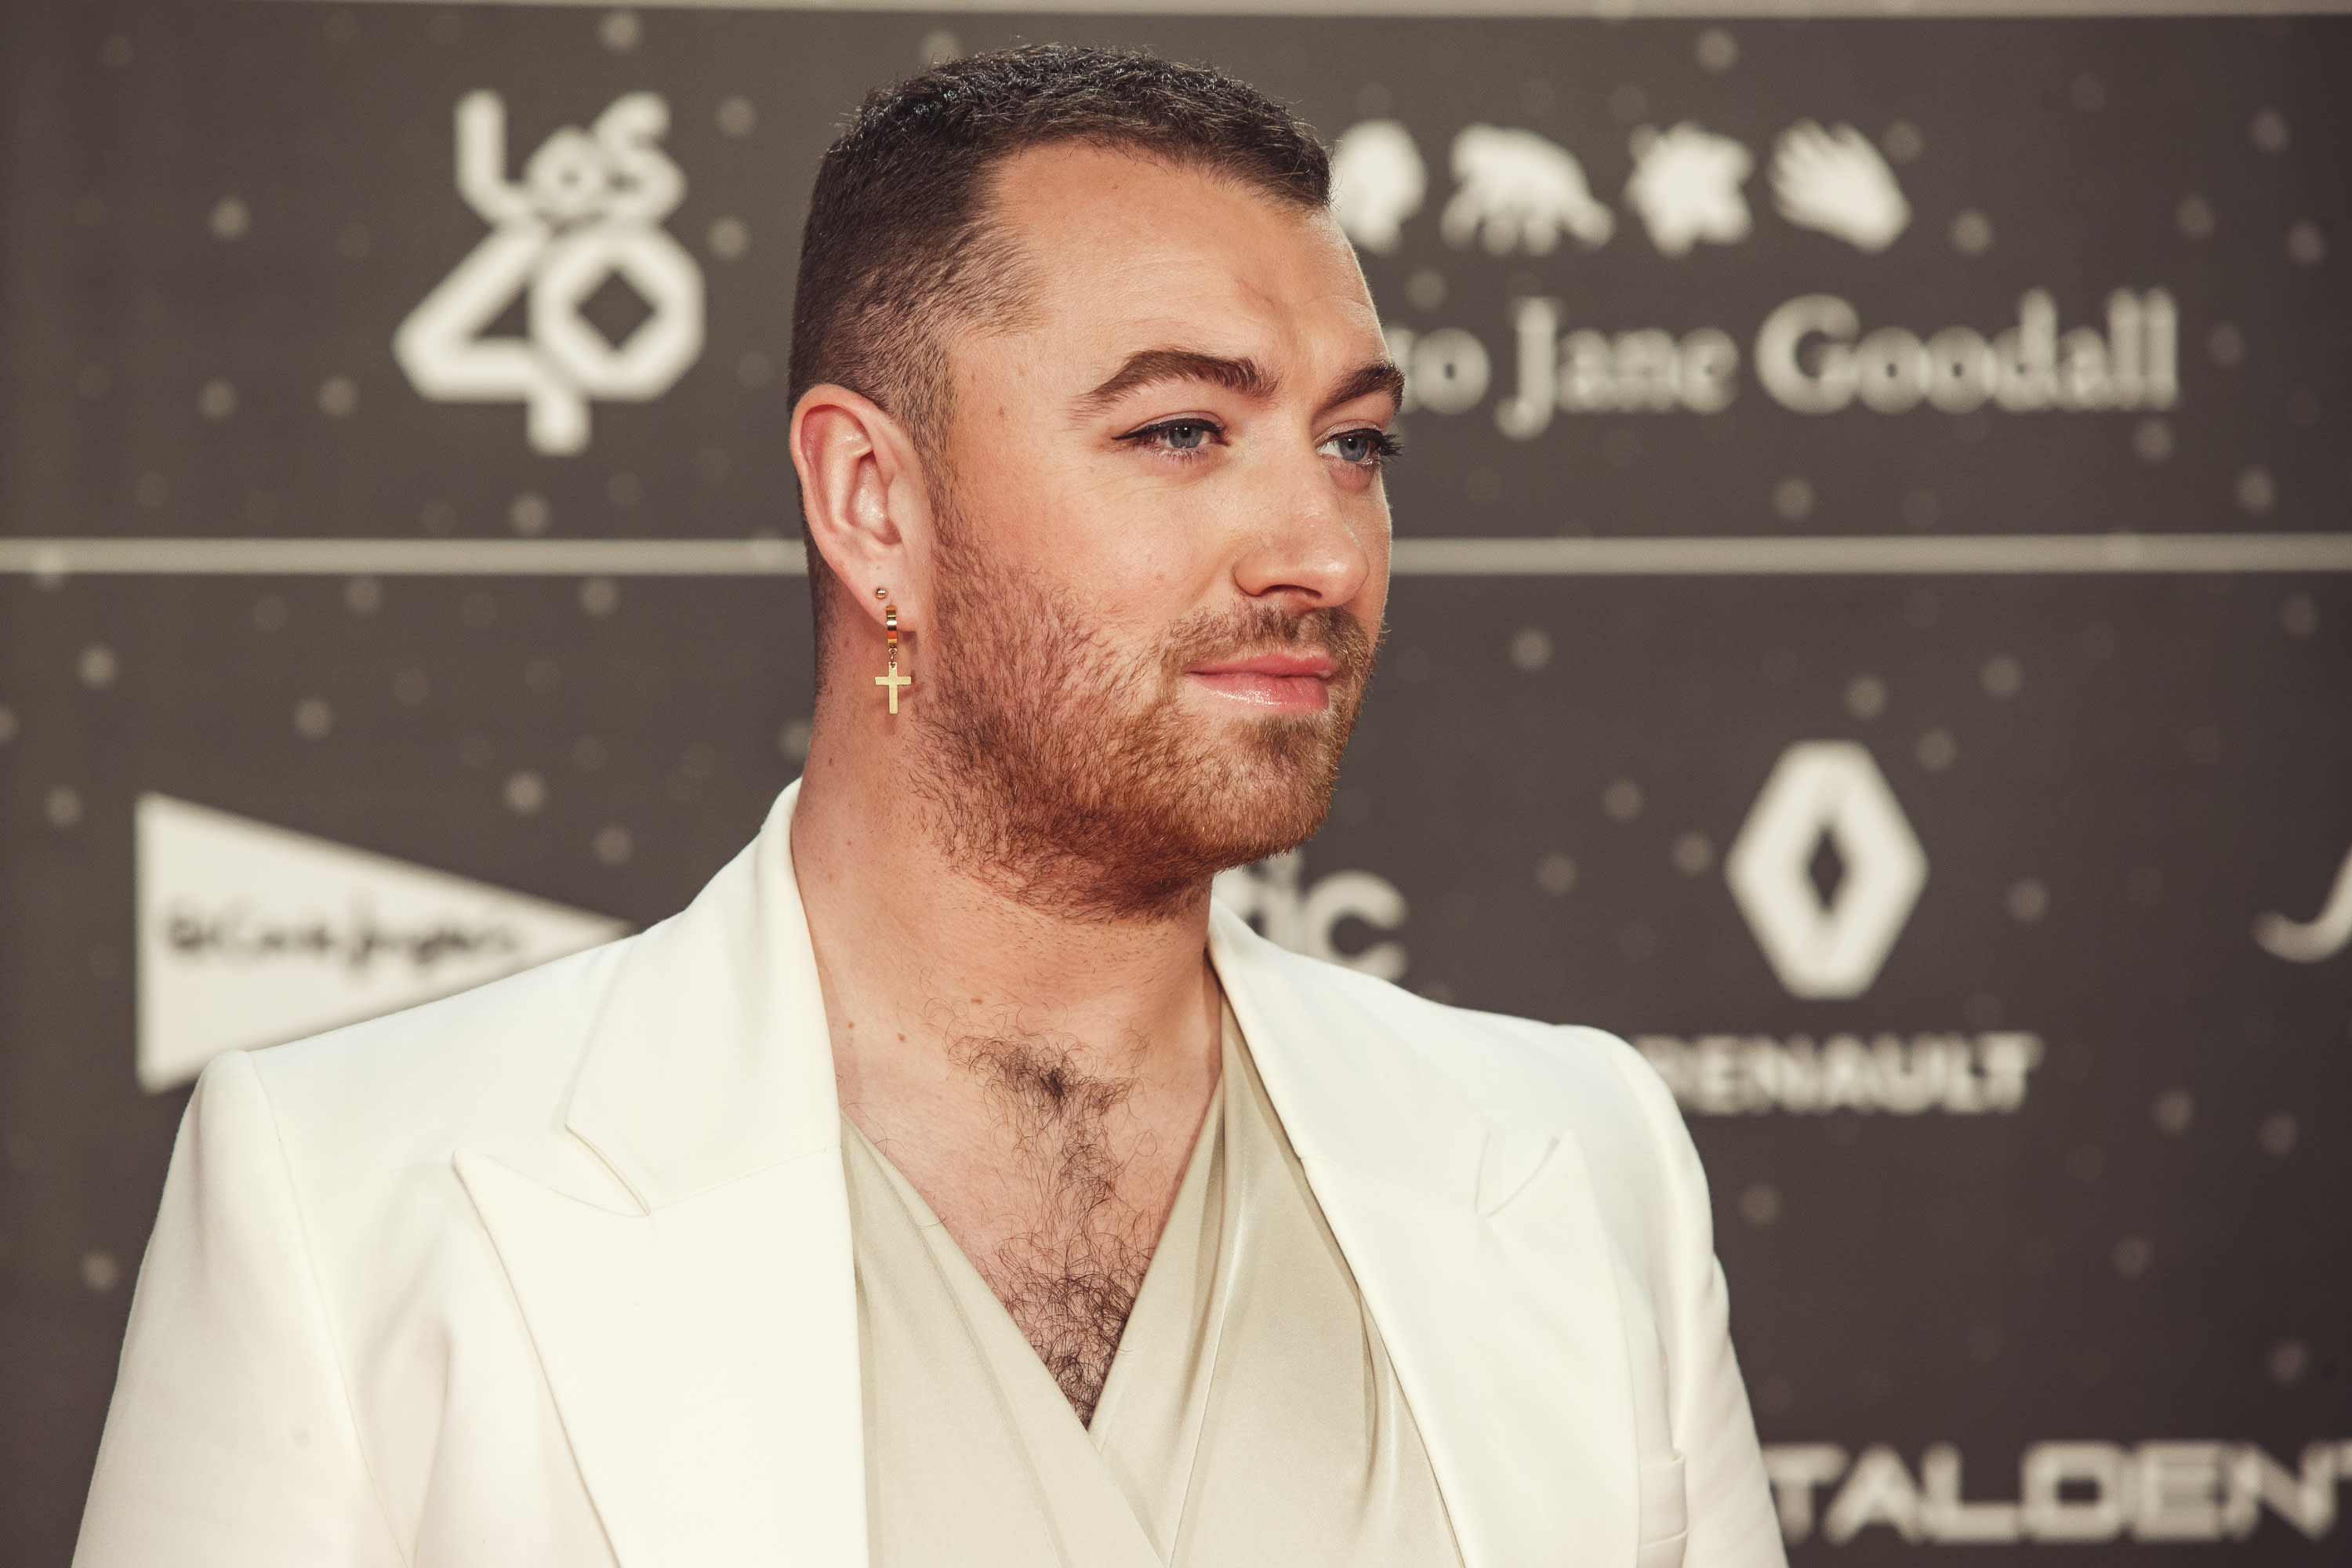 Sam Smith considering quitting touring due to strain it has on their mental health